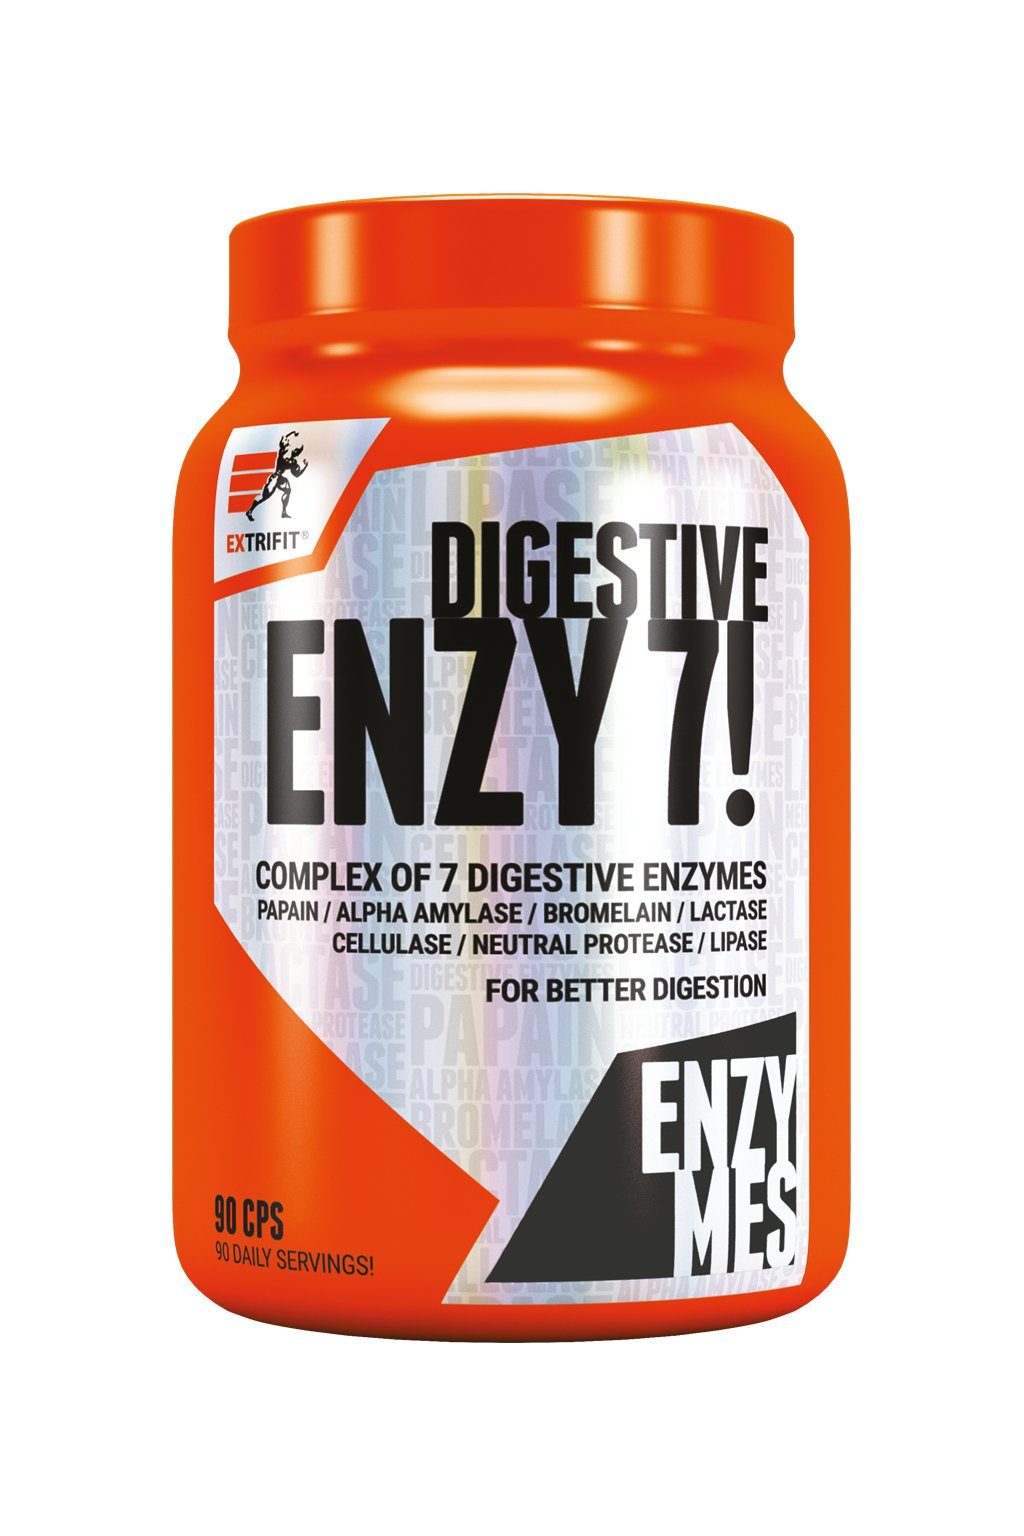 Extrifit Enzy 7! Digestive Enzymes 90 cps obr1